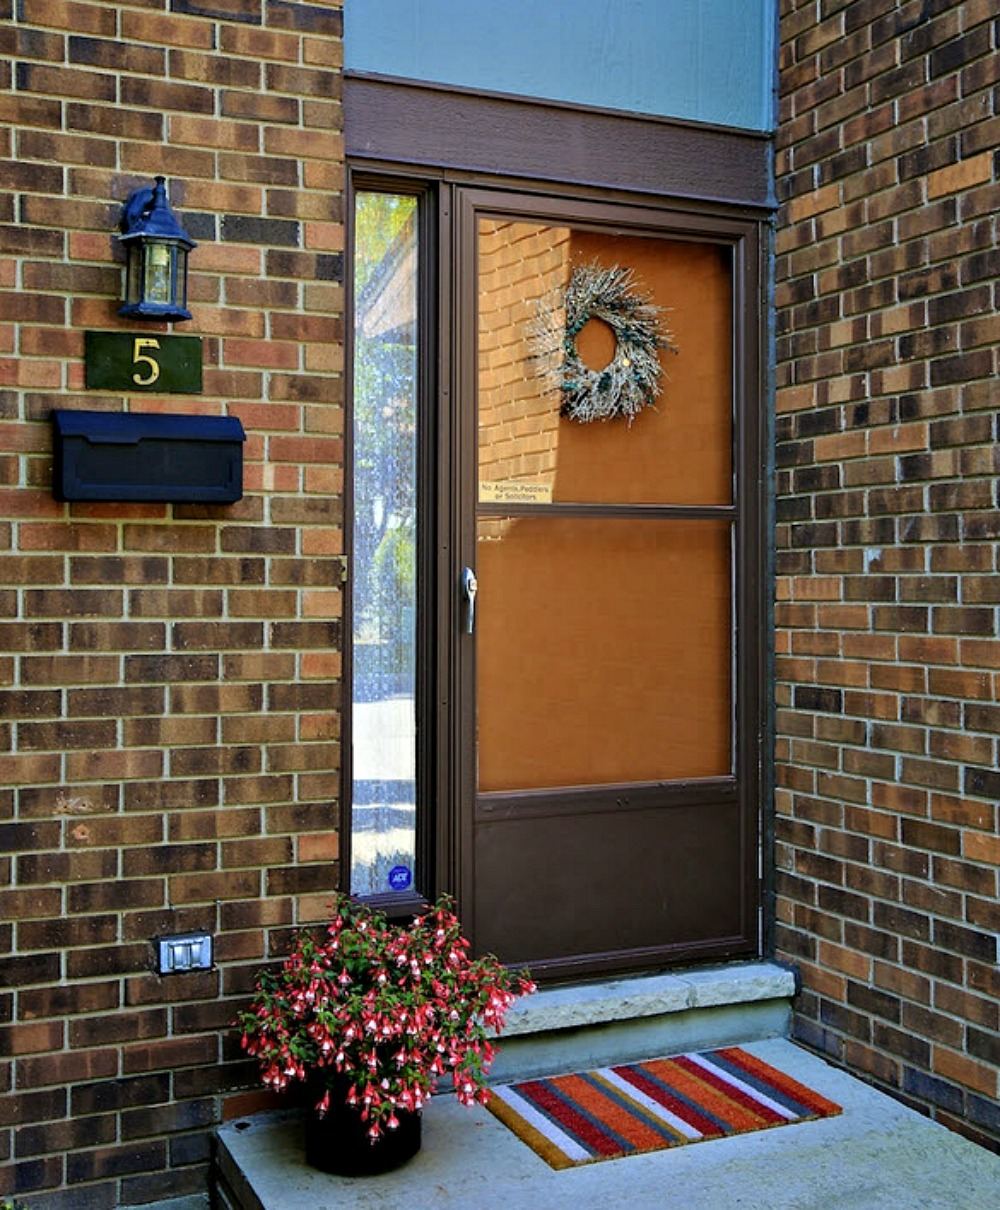 Adding curb appeal with strict condo rules